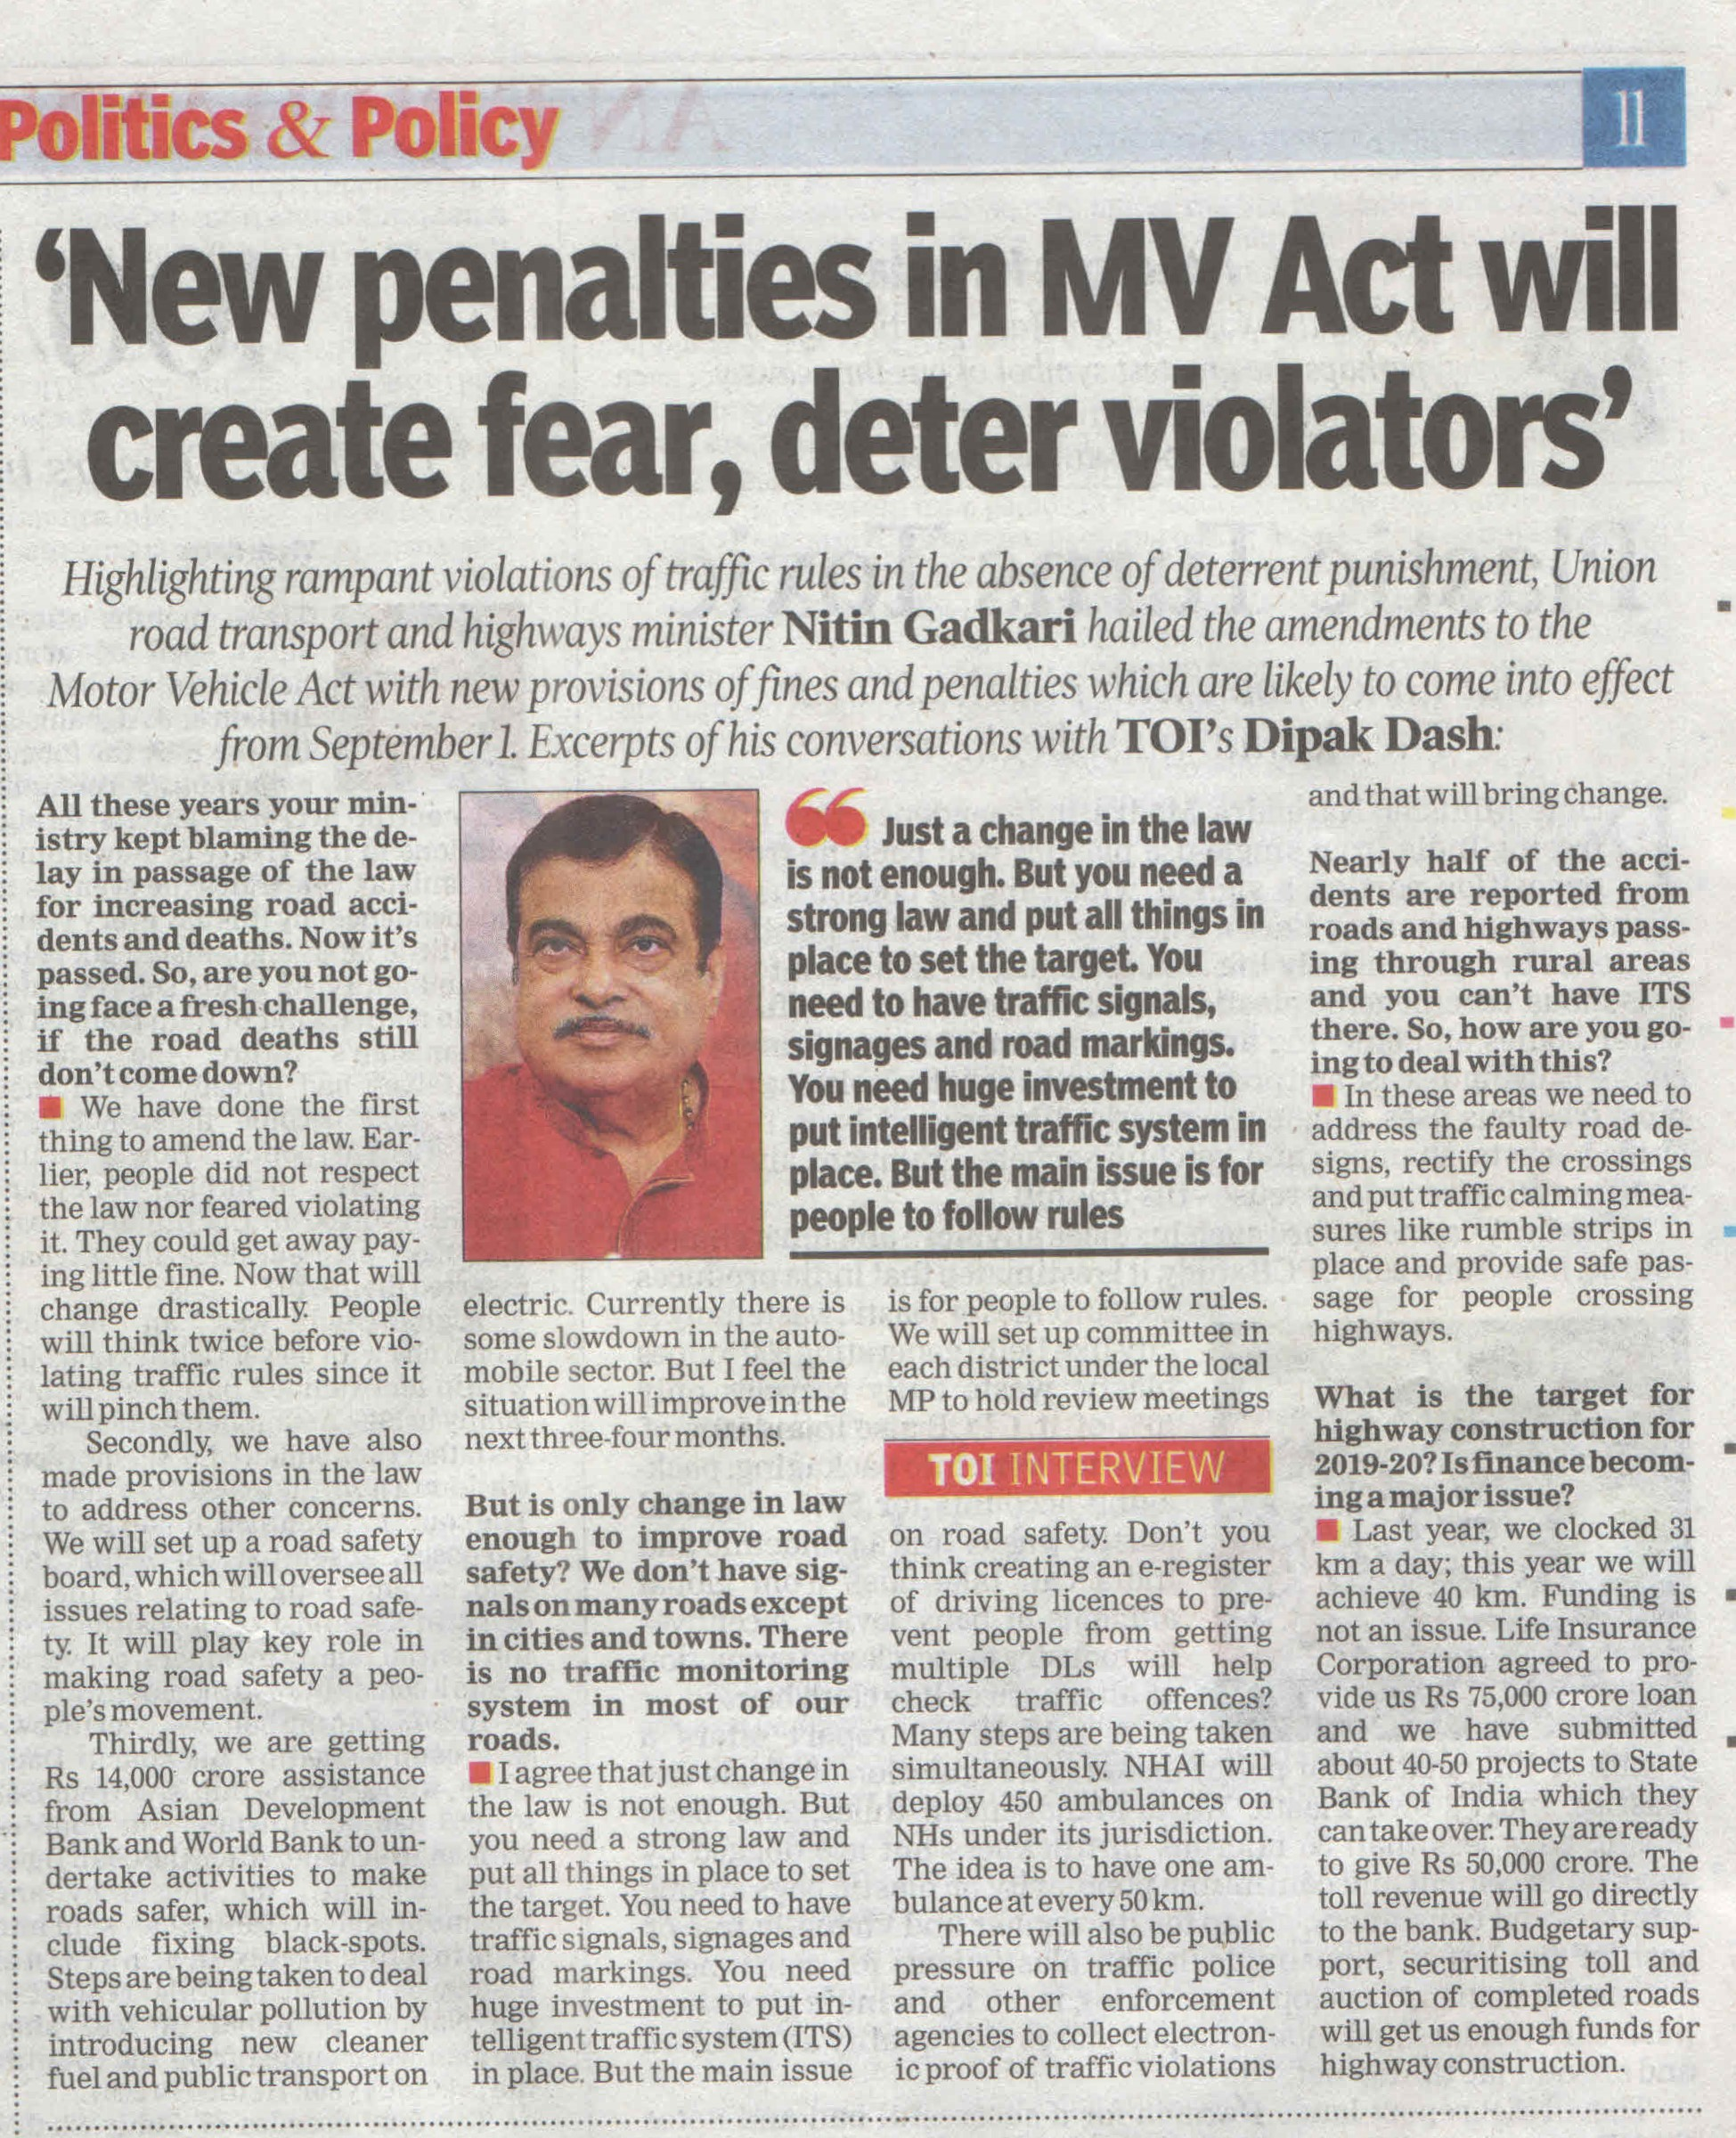 New Penalties in MV Act will create fear, deter violators